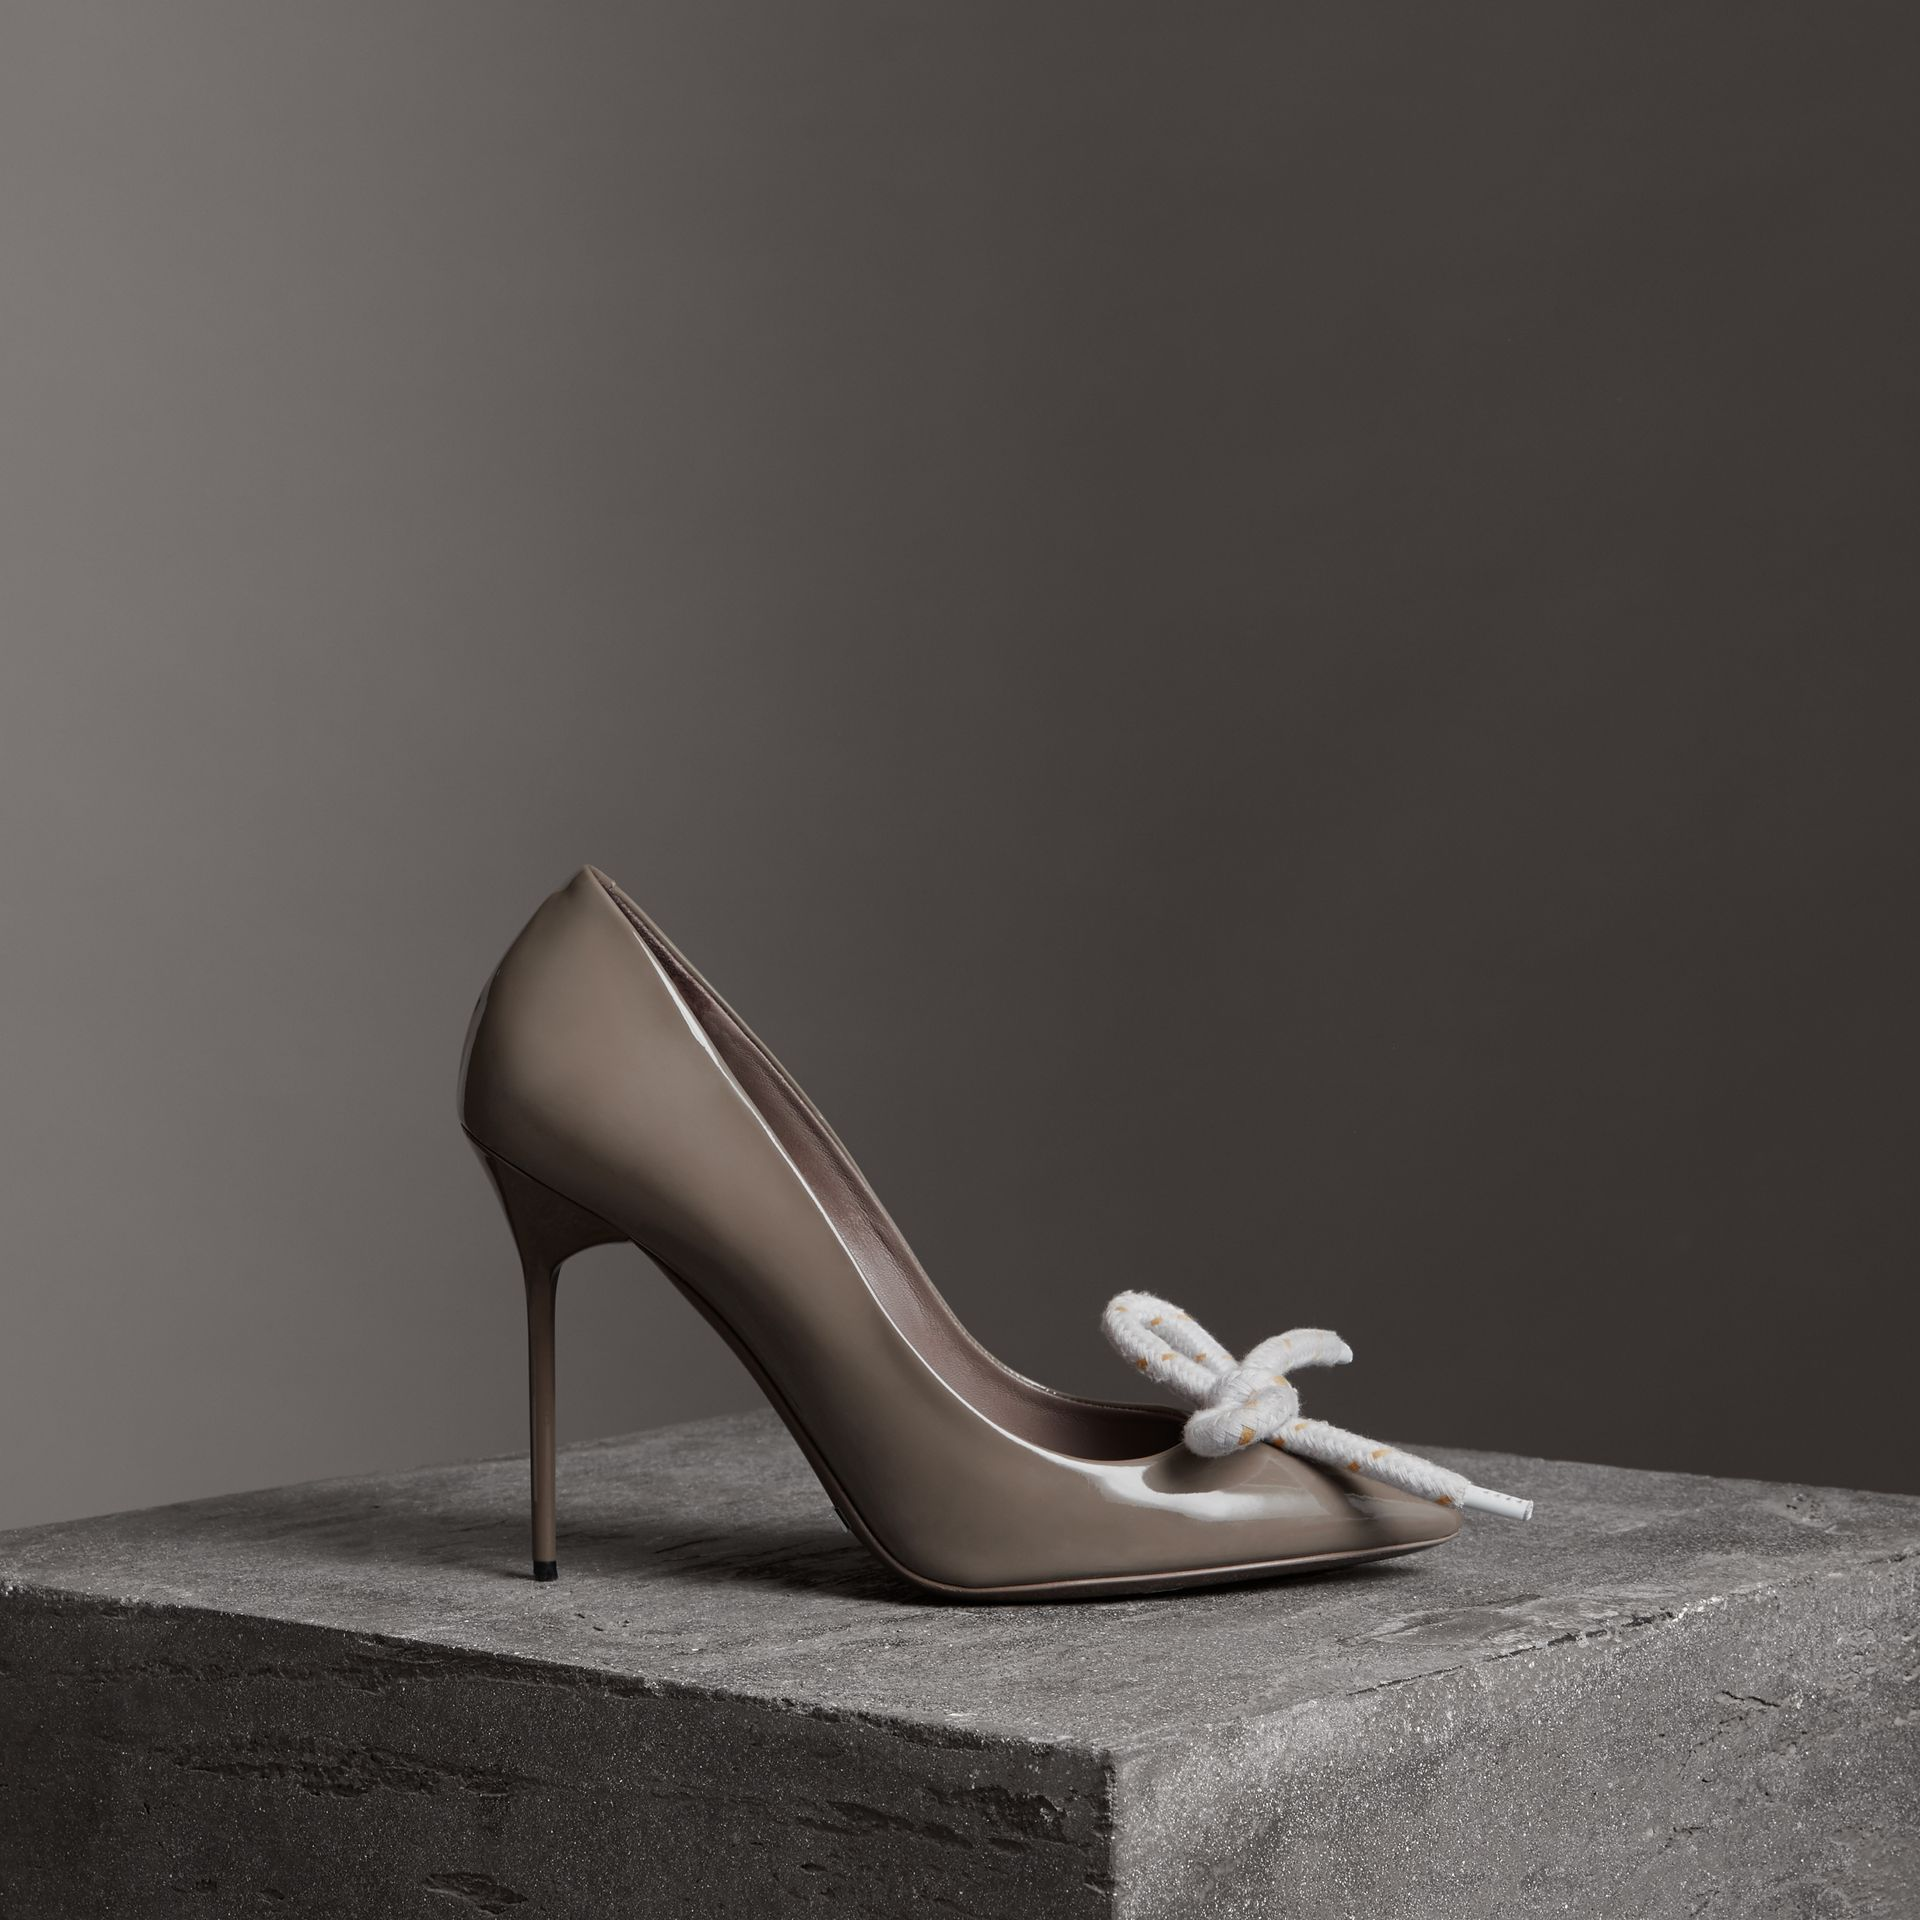 Stiletto-Pumps aus Lackleder mit Kordeldetail (Taupe-grau) - Damen | Burberry - Galerie-Bild 0